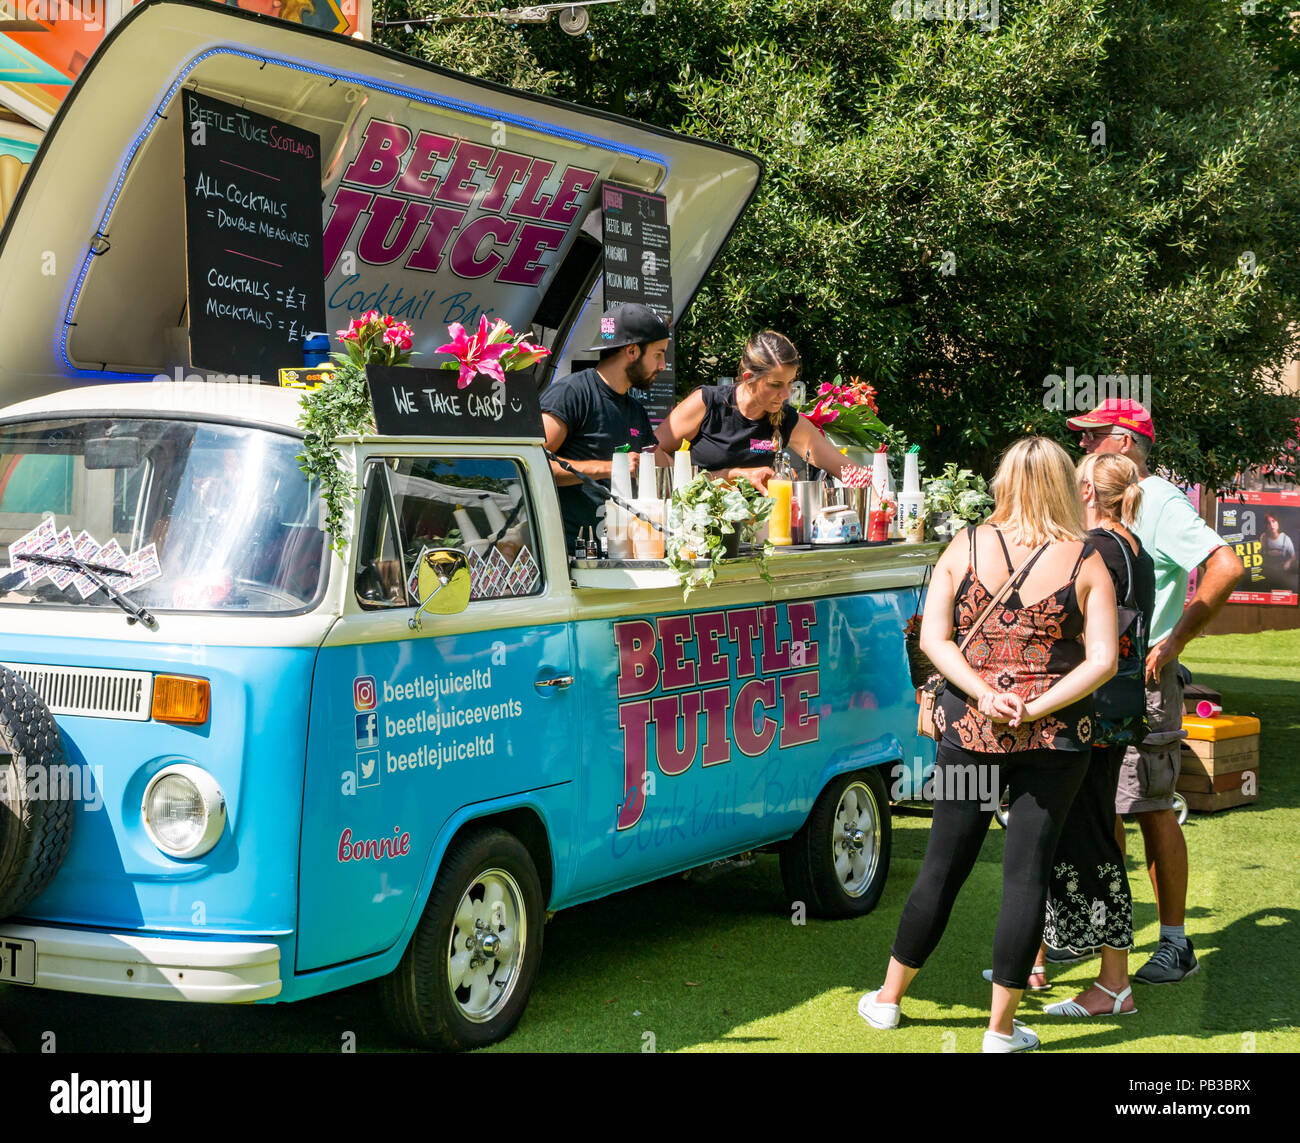 Edinburgh, UK. 26th July 2018. Edinburgh Food Festival 2018 in George Square Gardens, Edinburgh, Scotland, United Kingdom. There are food stalls with over 20 local food and drink producers in the free outdoor event. Customers at the Beetle Juice VW cocktail van bar - Stock Image